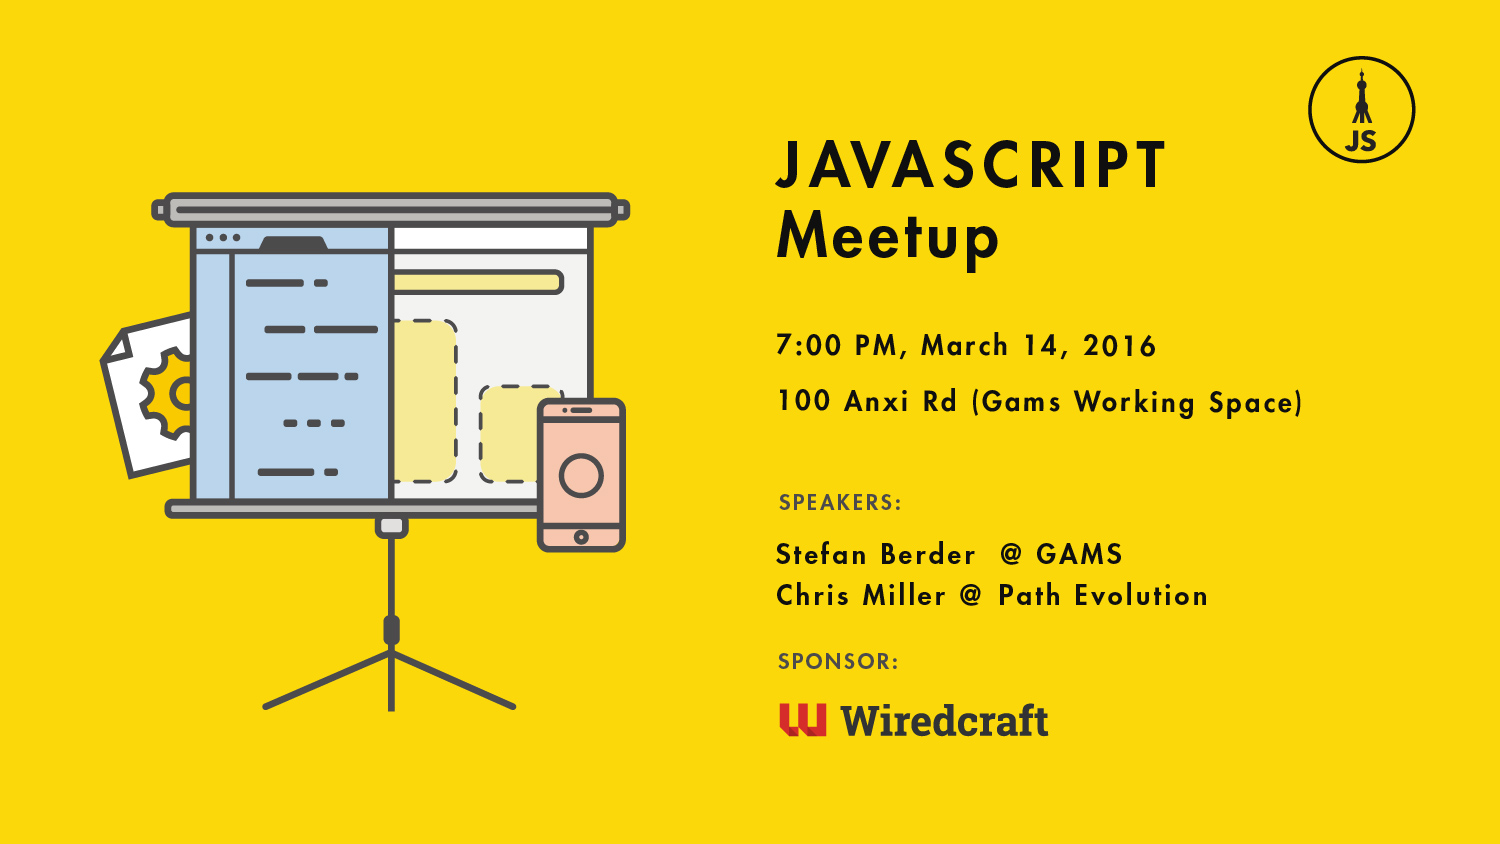 JavaScript Meetup Shanghai March 14th Flier